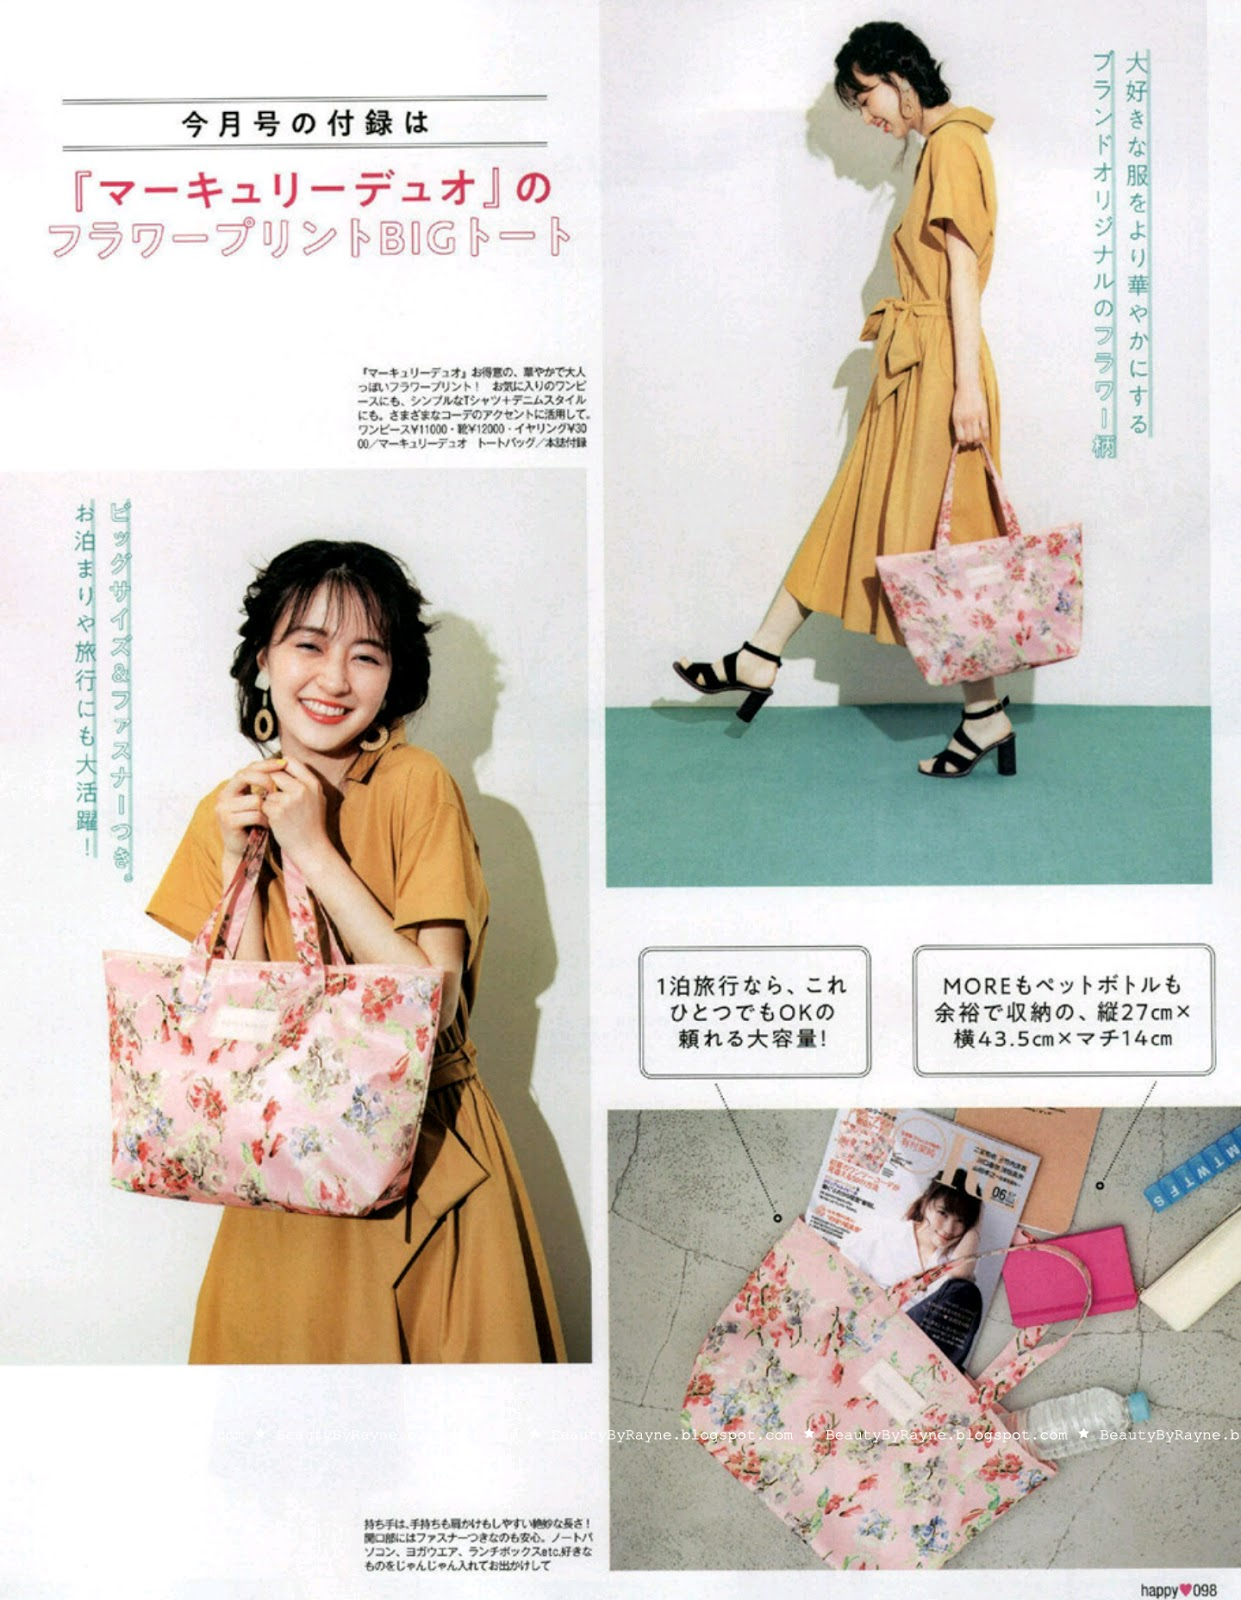 More June 2018 Issue, Free Japanese Fashion Magazine Scans